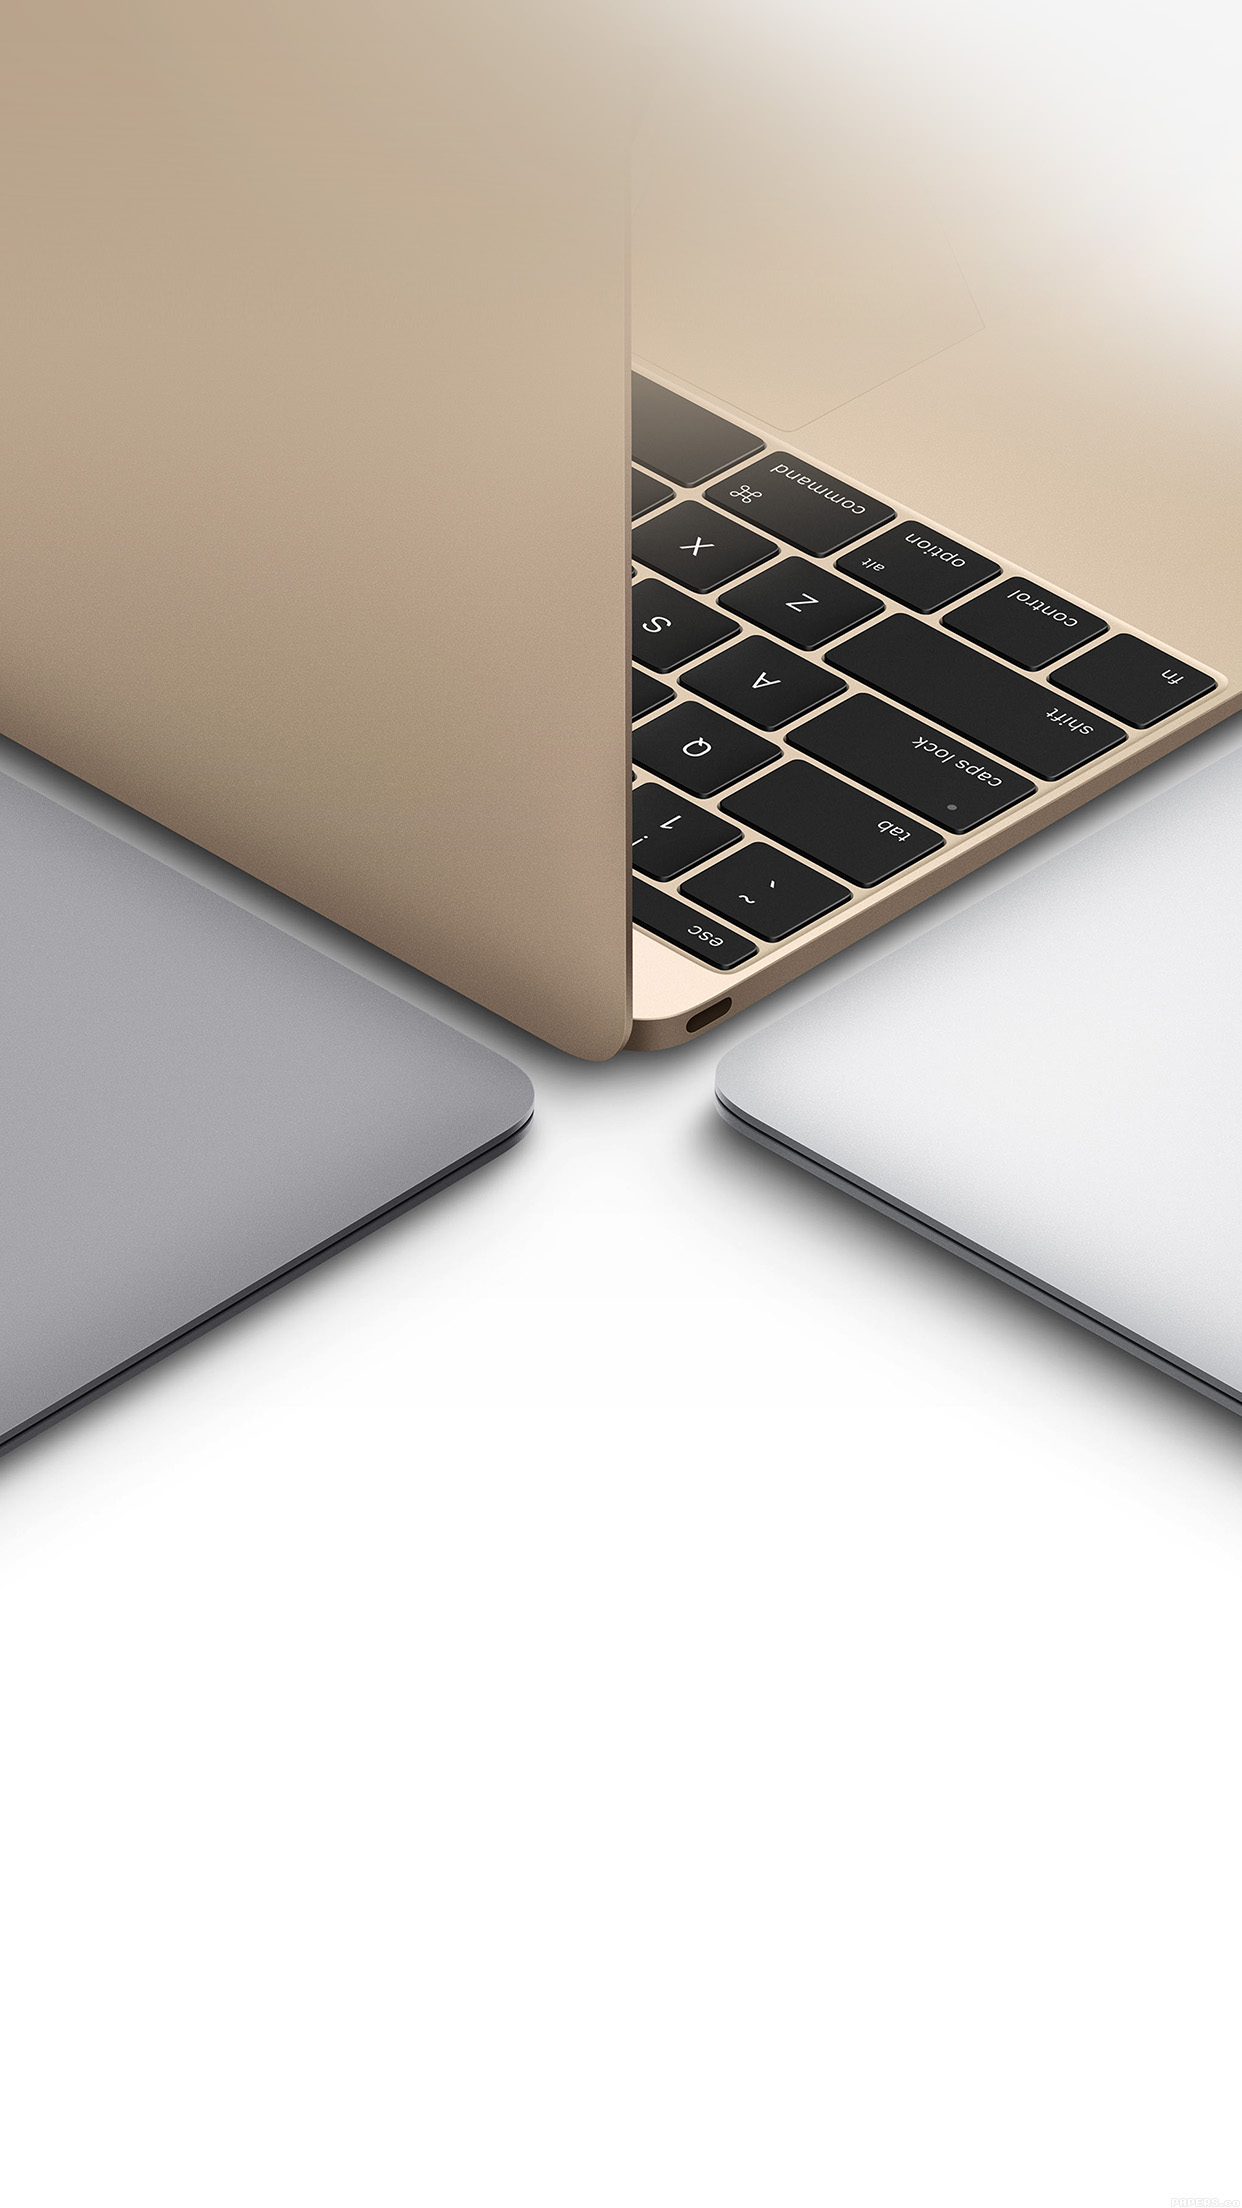 Apple Macbook Gold Silver Slate Gray Art Android Wallpaper Android